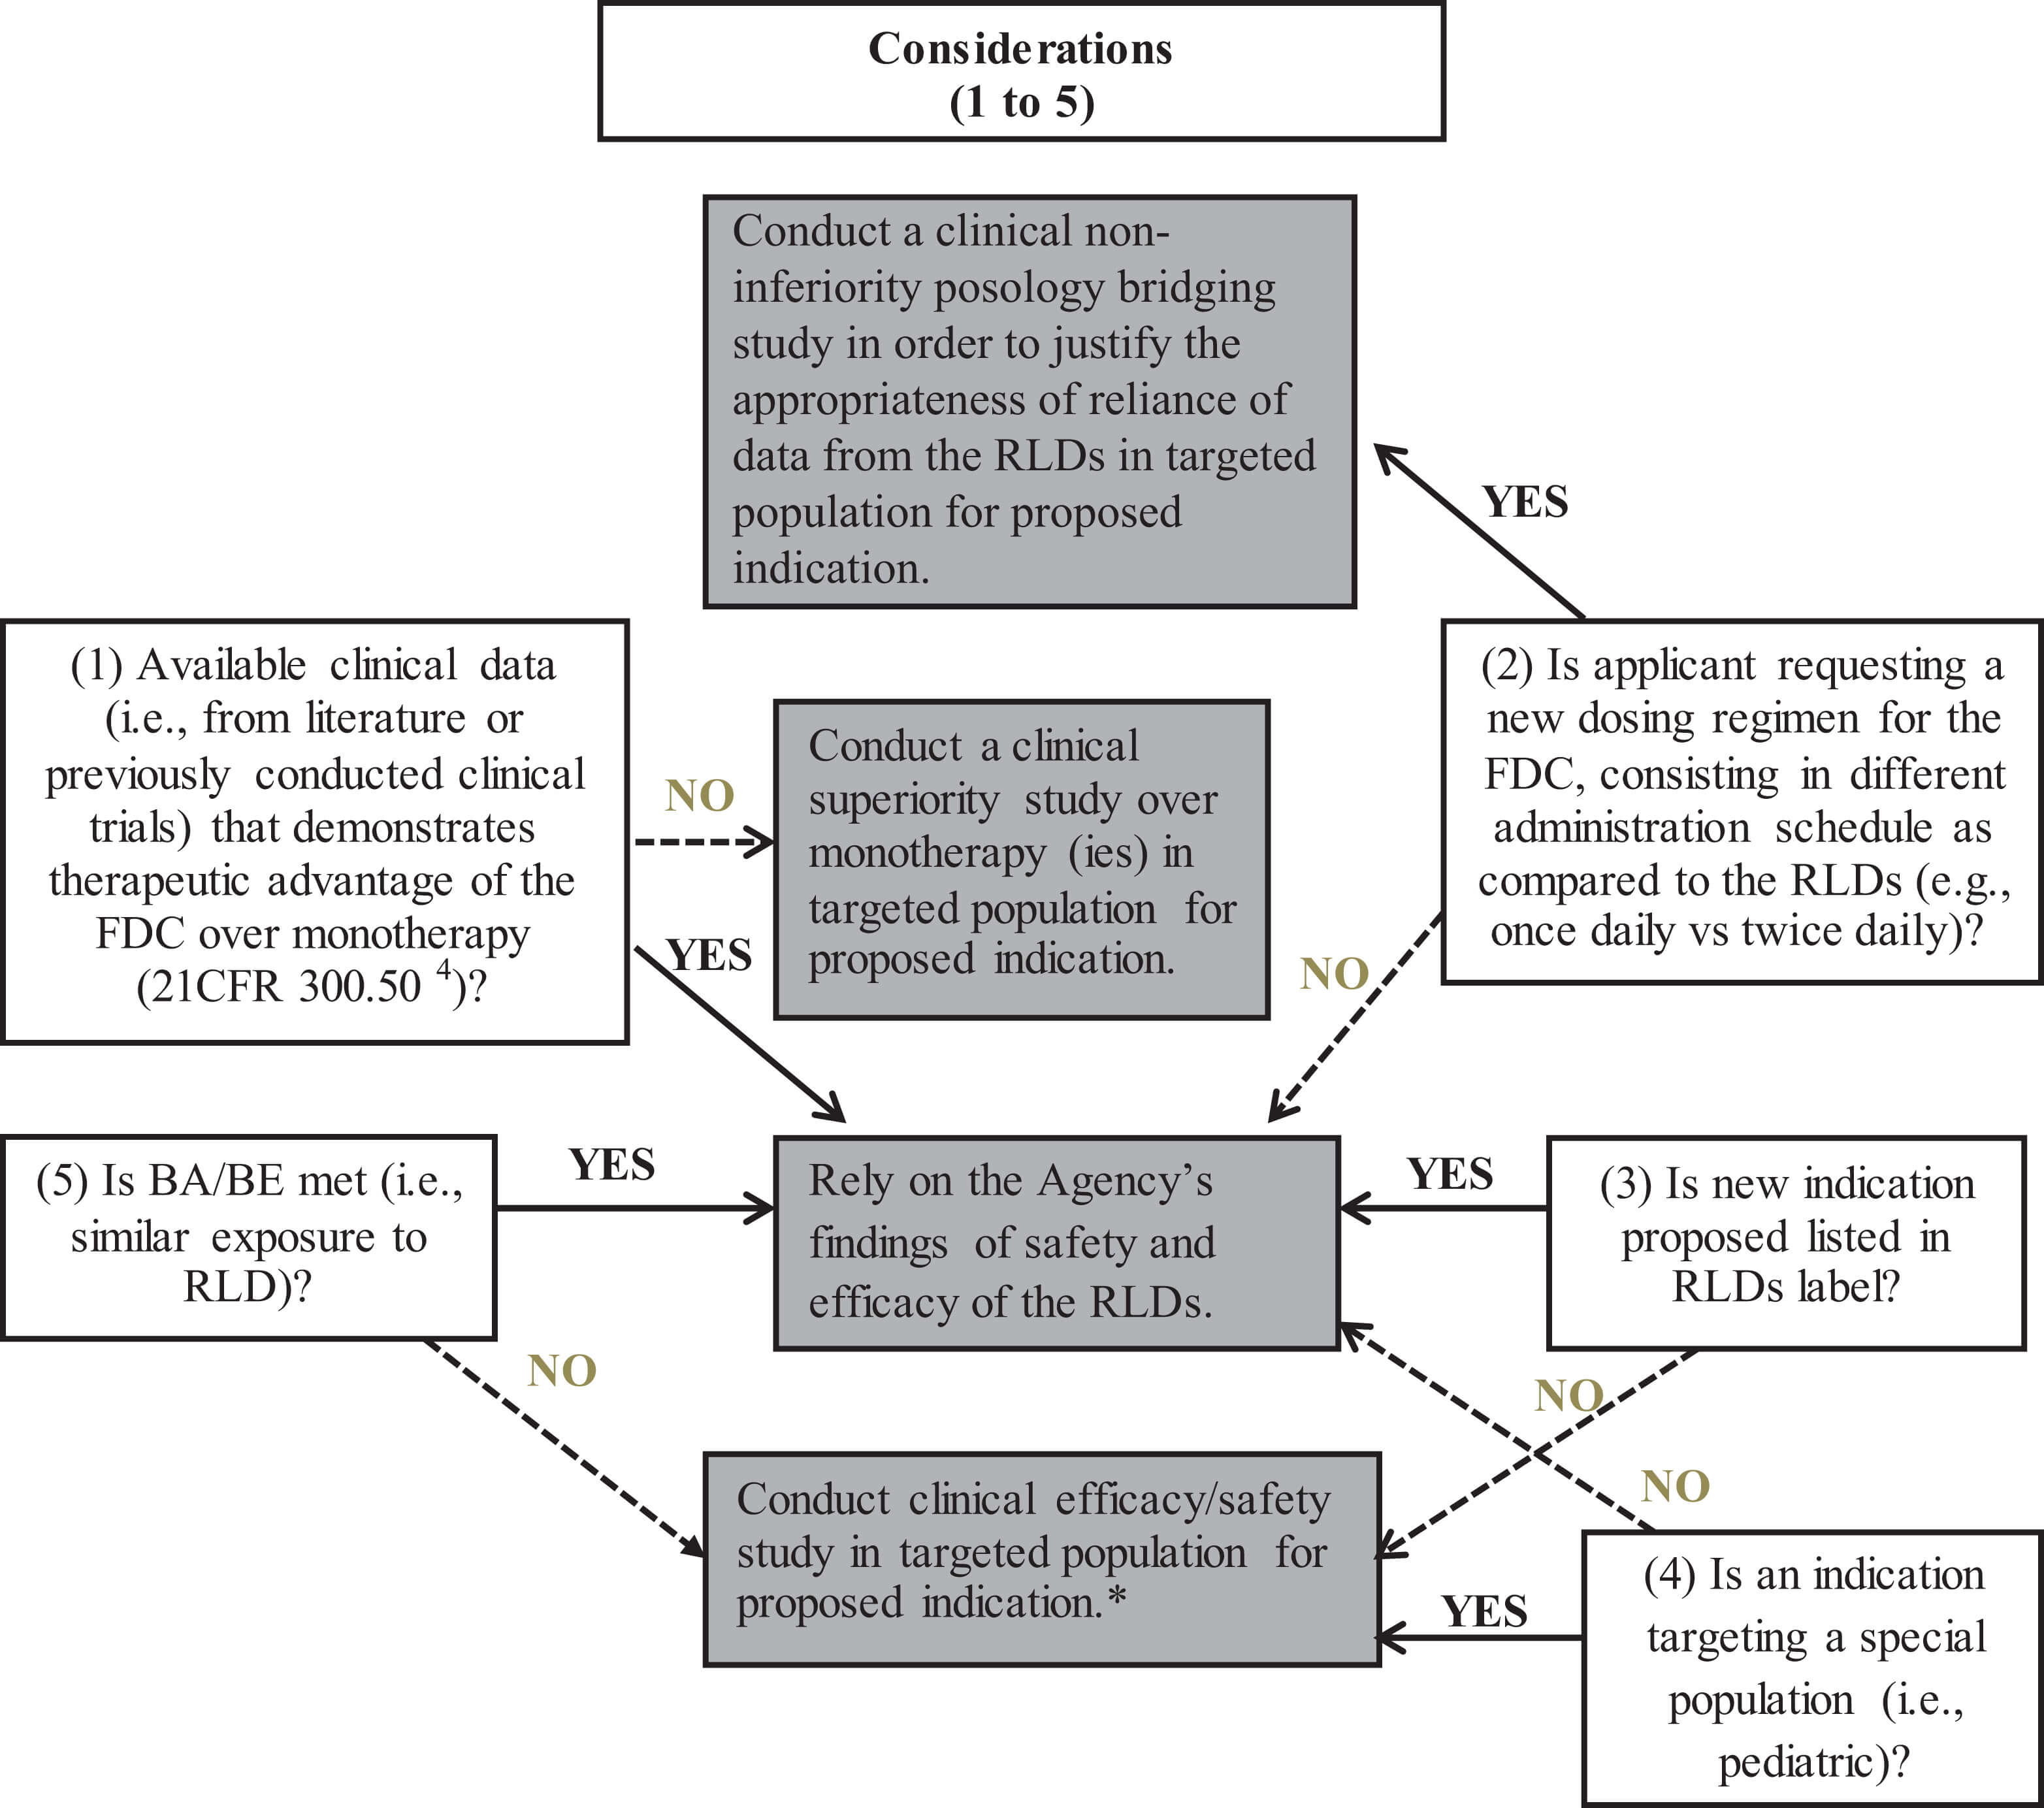 Figure 6. Clinical efficacy/safety decision tree for new oral fixed-dose combinations (FDCs).